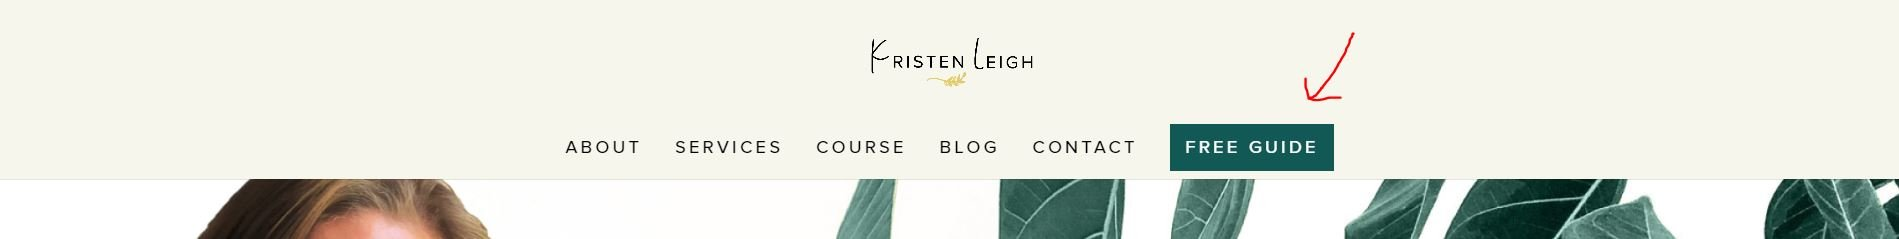 Kristen Leigh Designs | WordPress Web Design Studio | Best Places to Add Email Opt In Form on Your Website | Button in Navigation Example